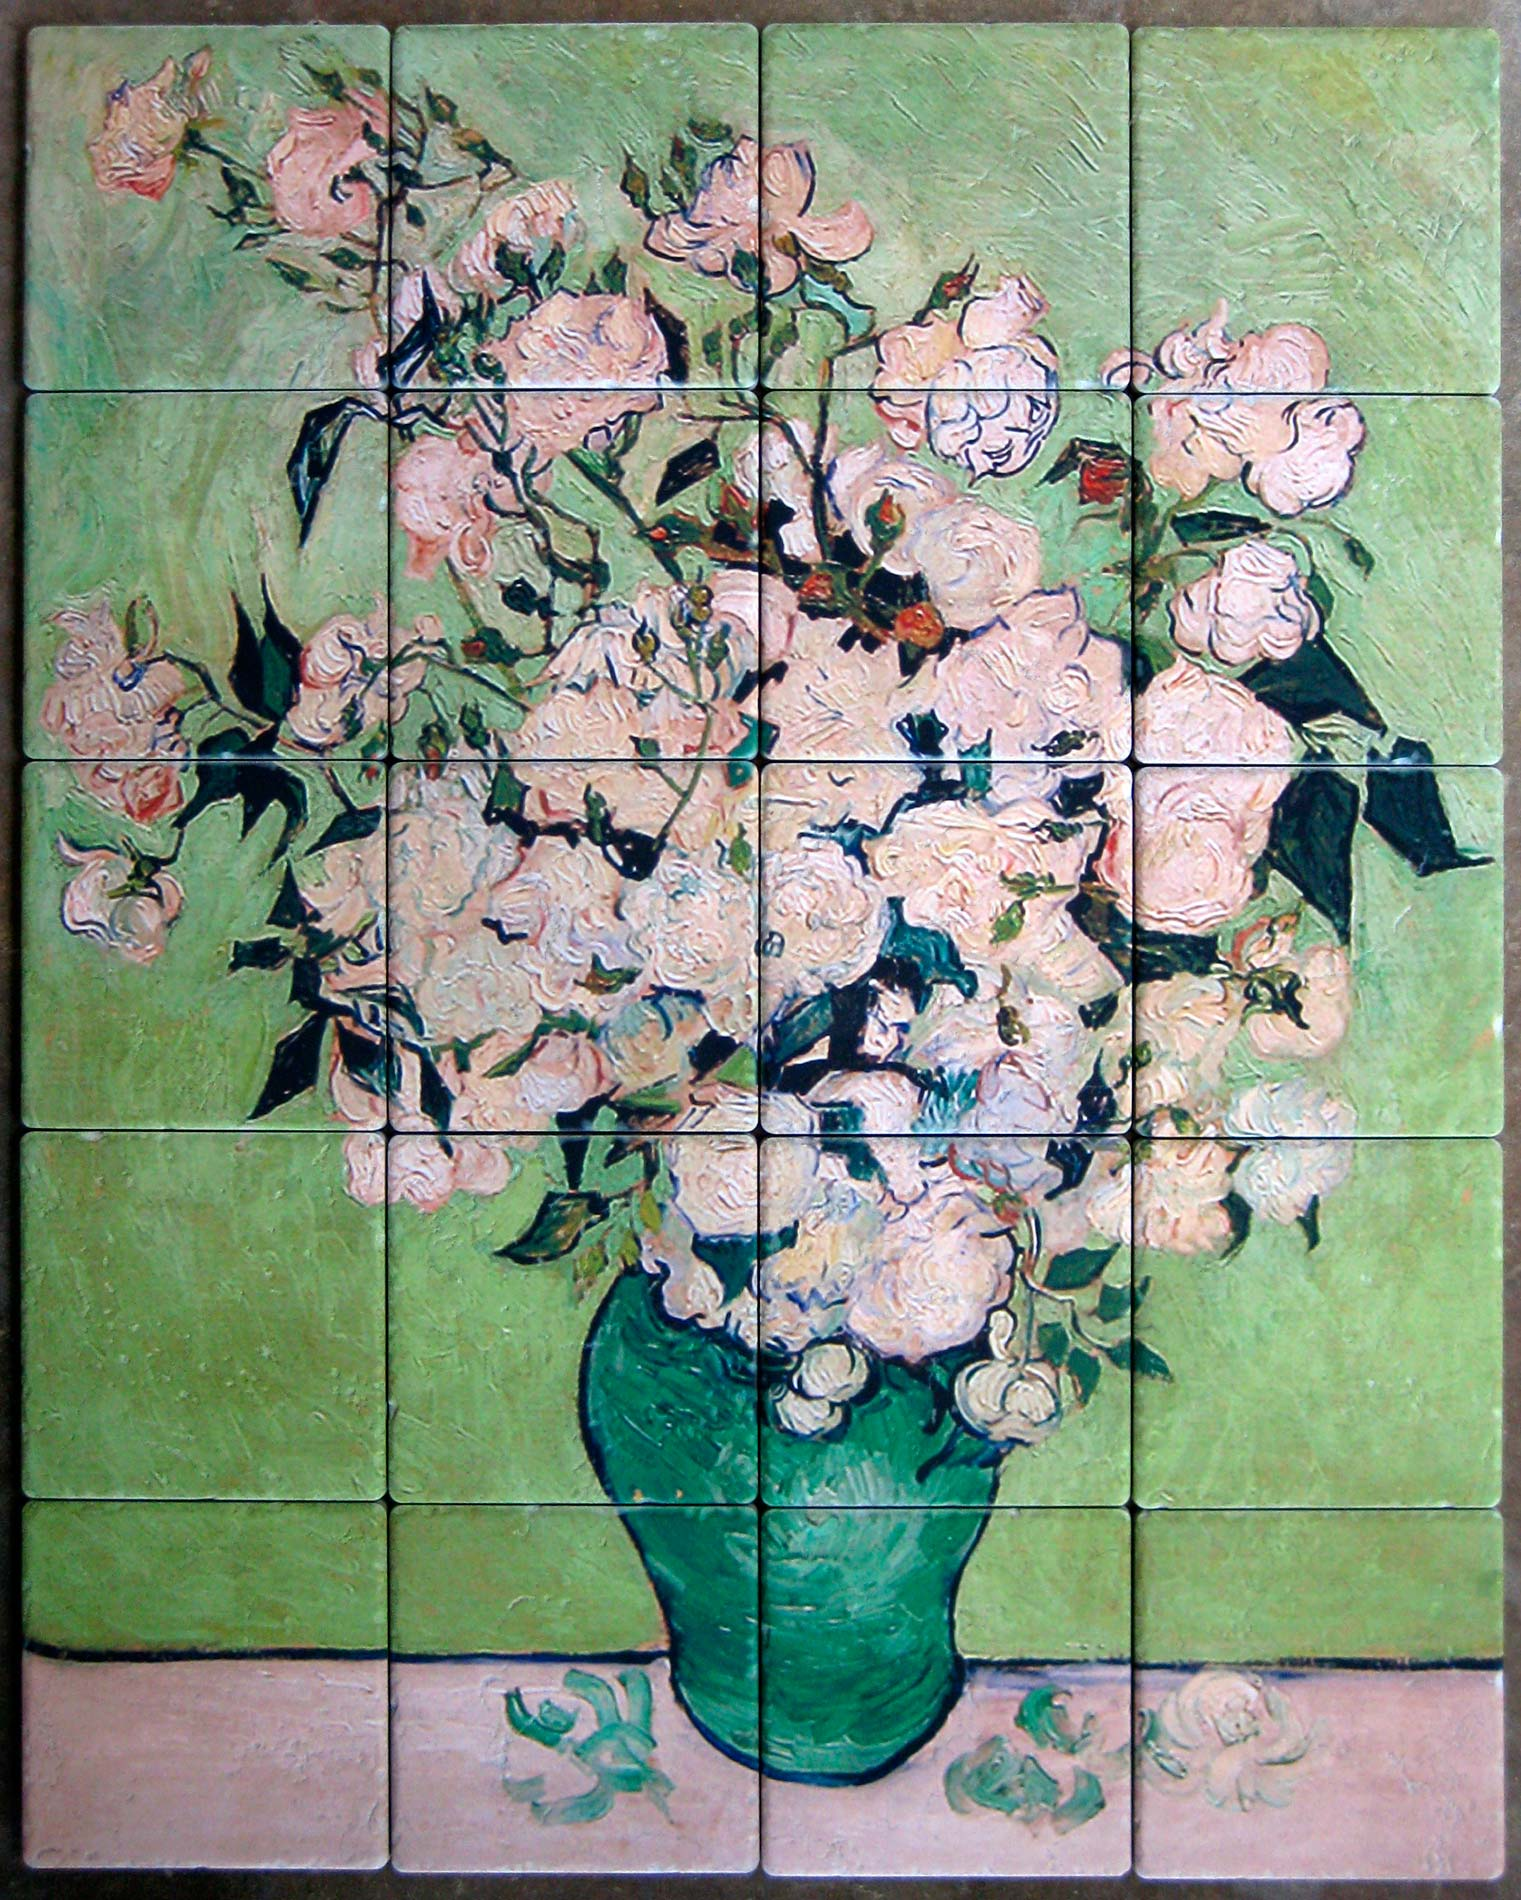 Fine art mural custom tile and tile murals for Artwork on tile ceramic mural